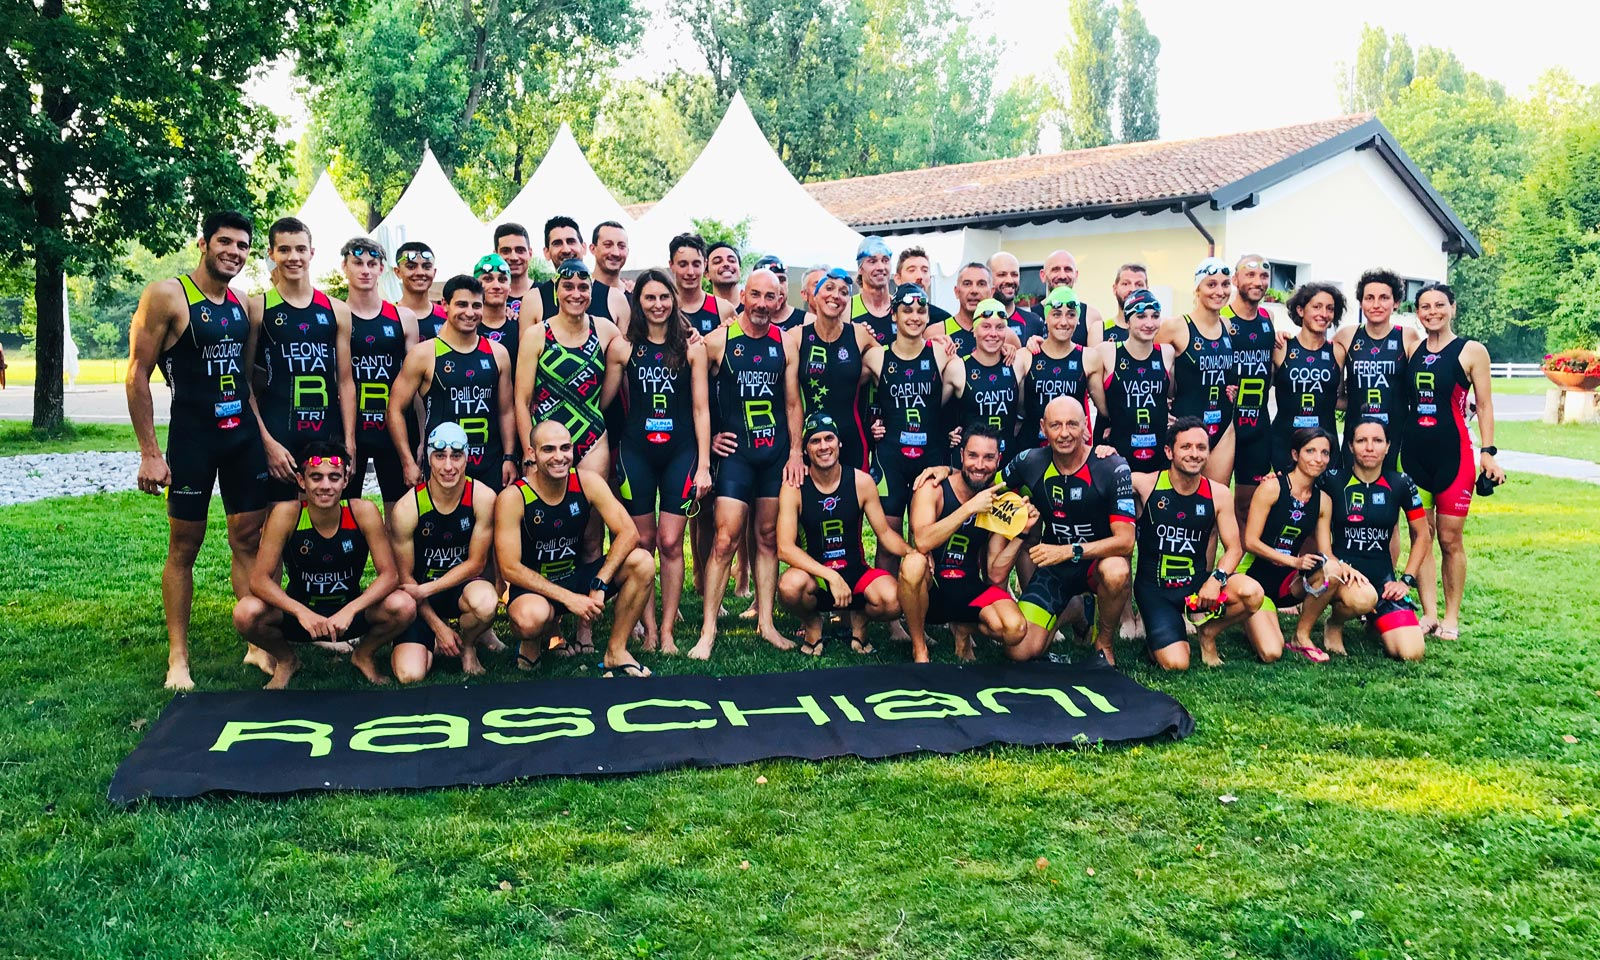 triathlon-pavese-raschiani-pavia-cycling-running-3